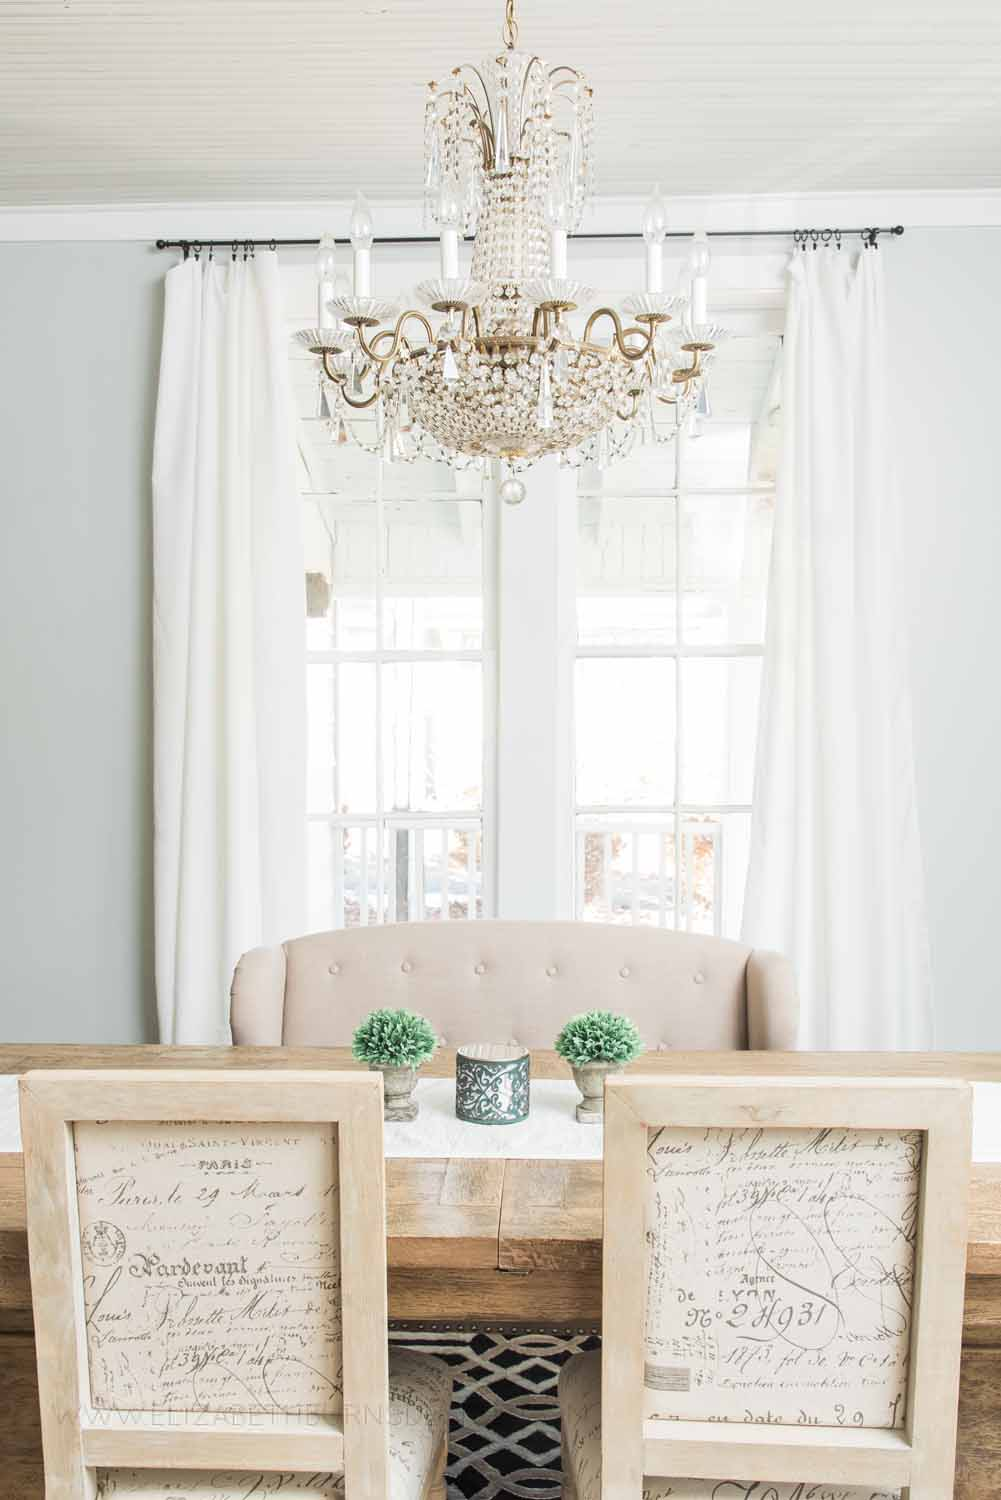 Elizabeth Burns Design Raleigh Interior Designer  Farmhouse Fixer Upper Cottage Renovation, Sherwin Williams Silver Strand SW 7057 Dining Room (3).jpg